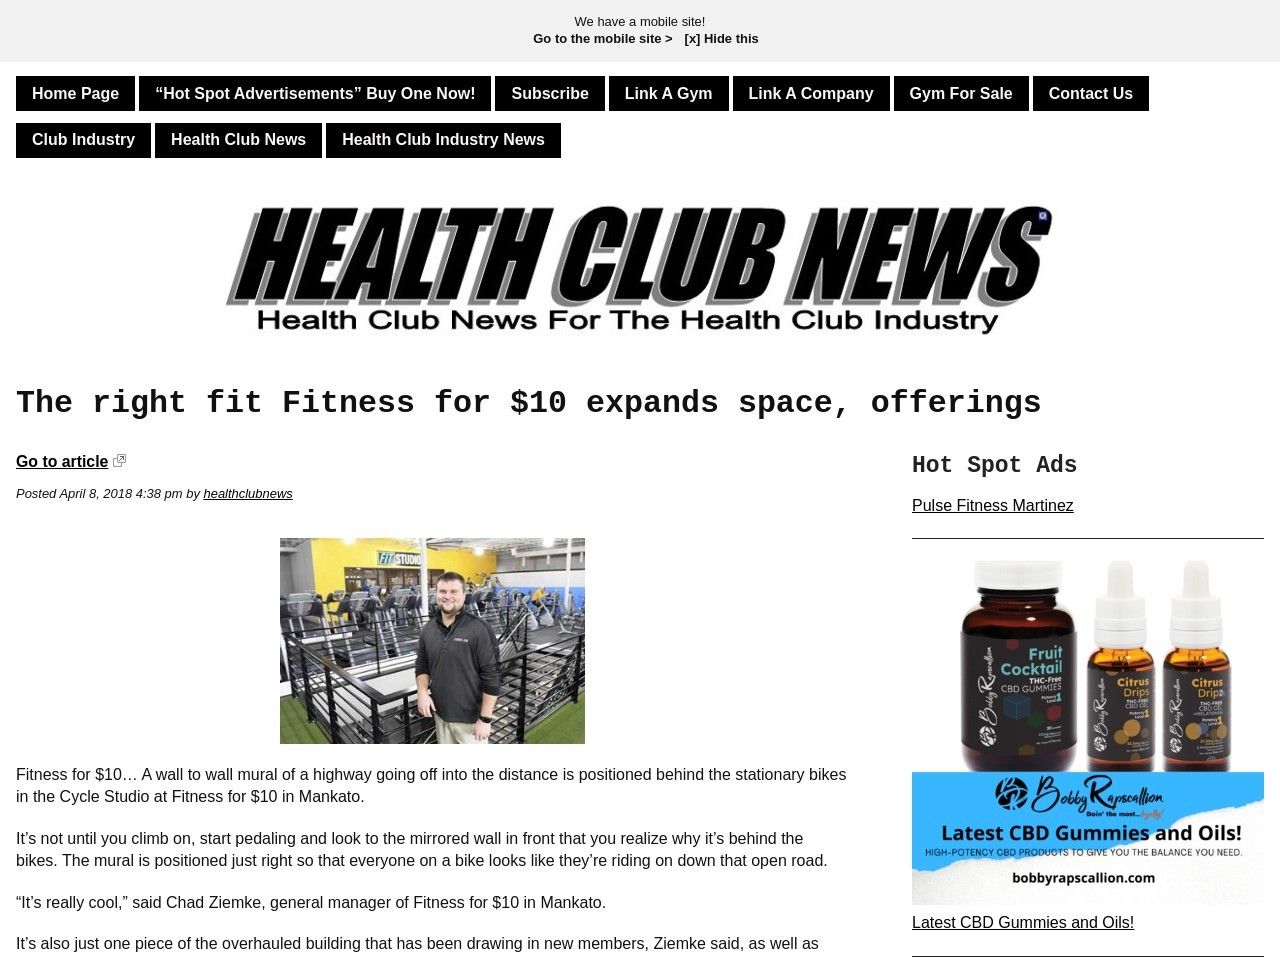 The right fit Fitness for $10 expands area, offerings